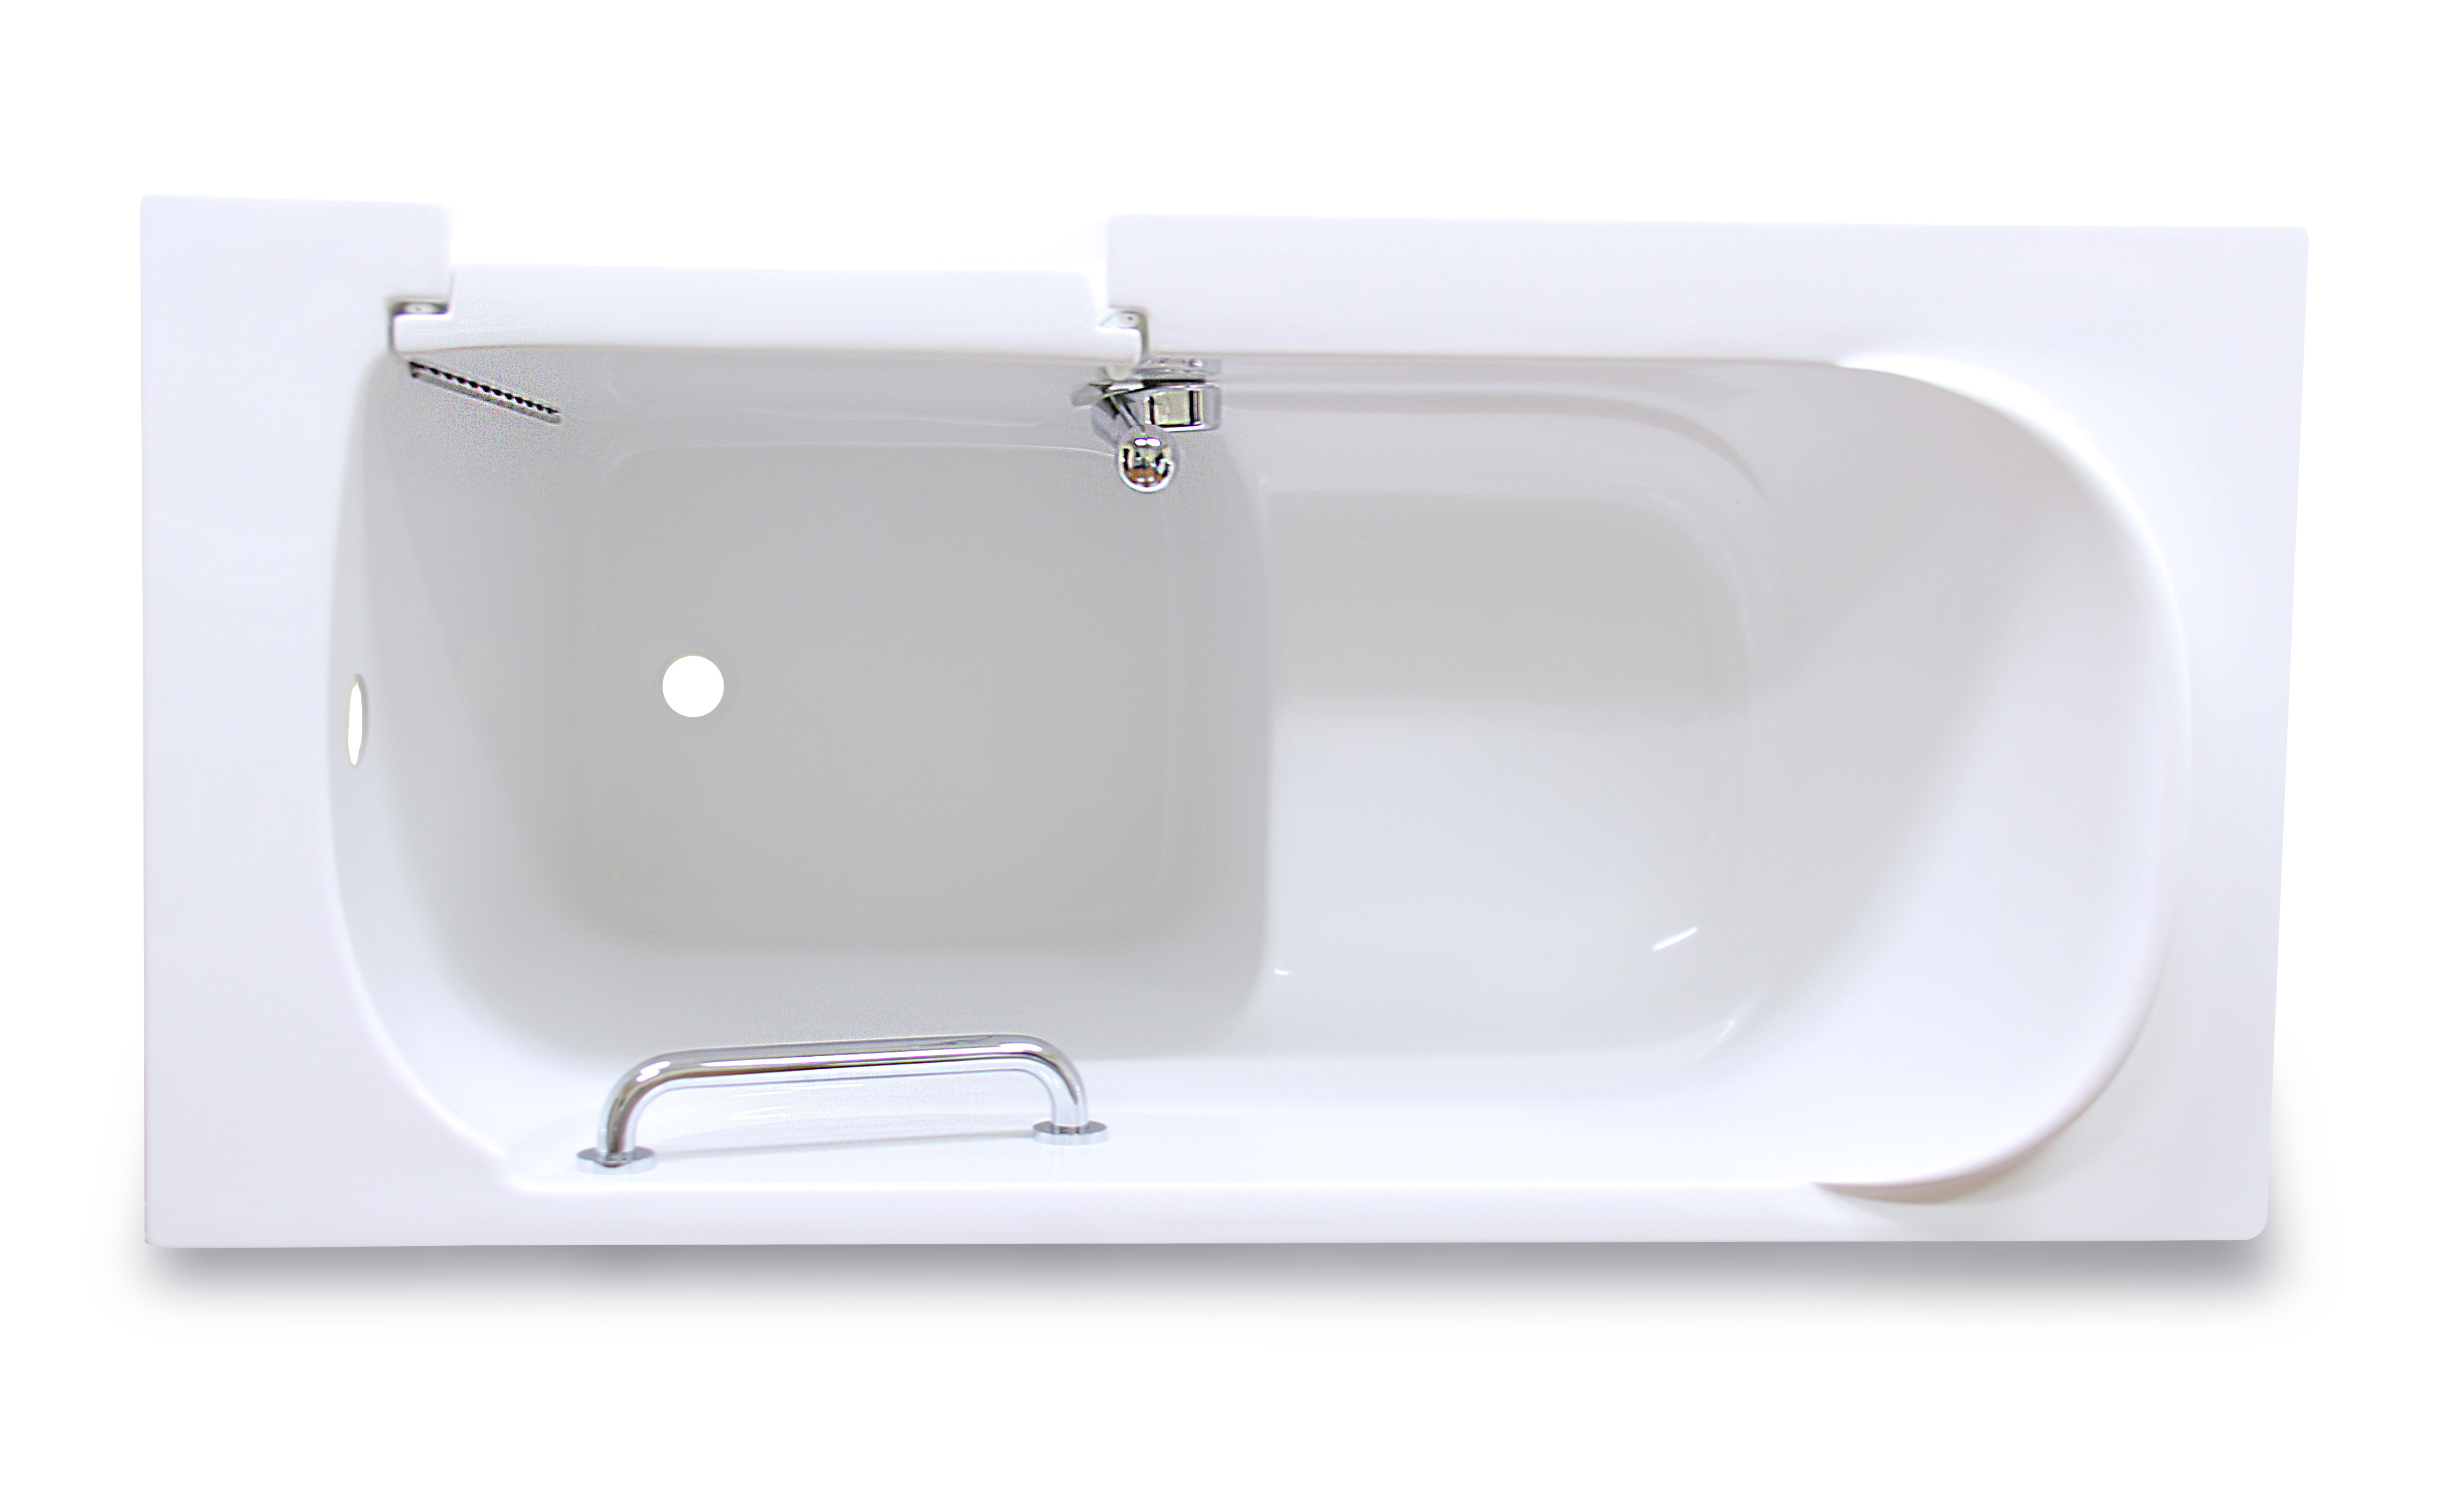 American Tubs CARE Series 2653 Hydro Massage Soaker Walk-in Tub ...